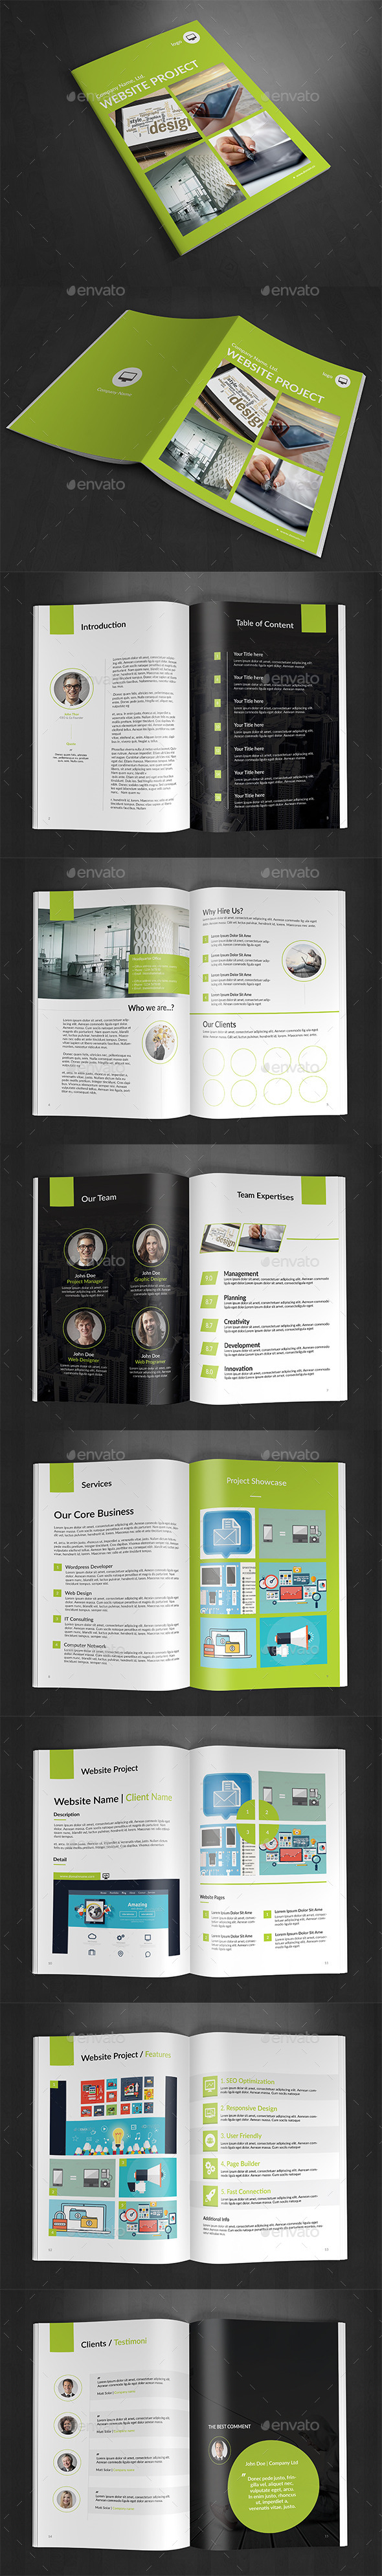 GraphicRiver Website Portfolio Brochure 10803297